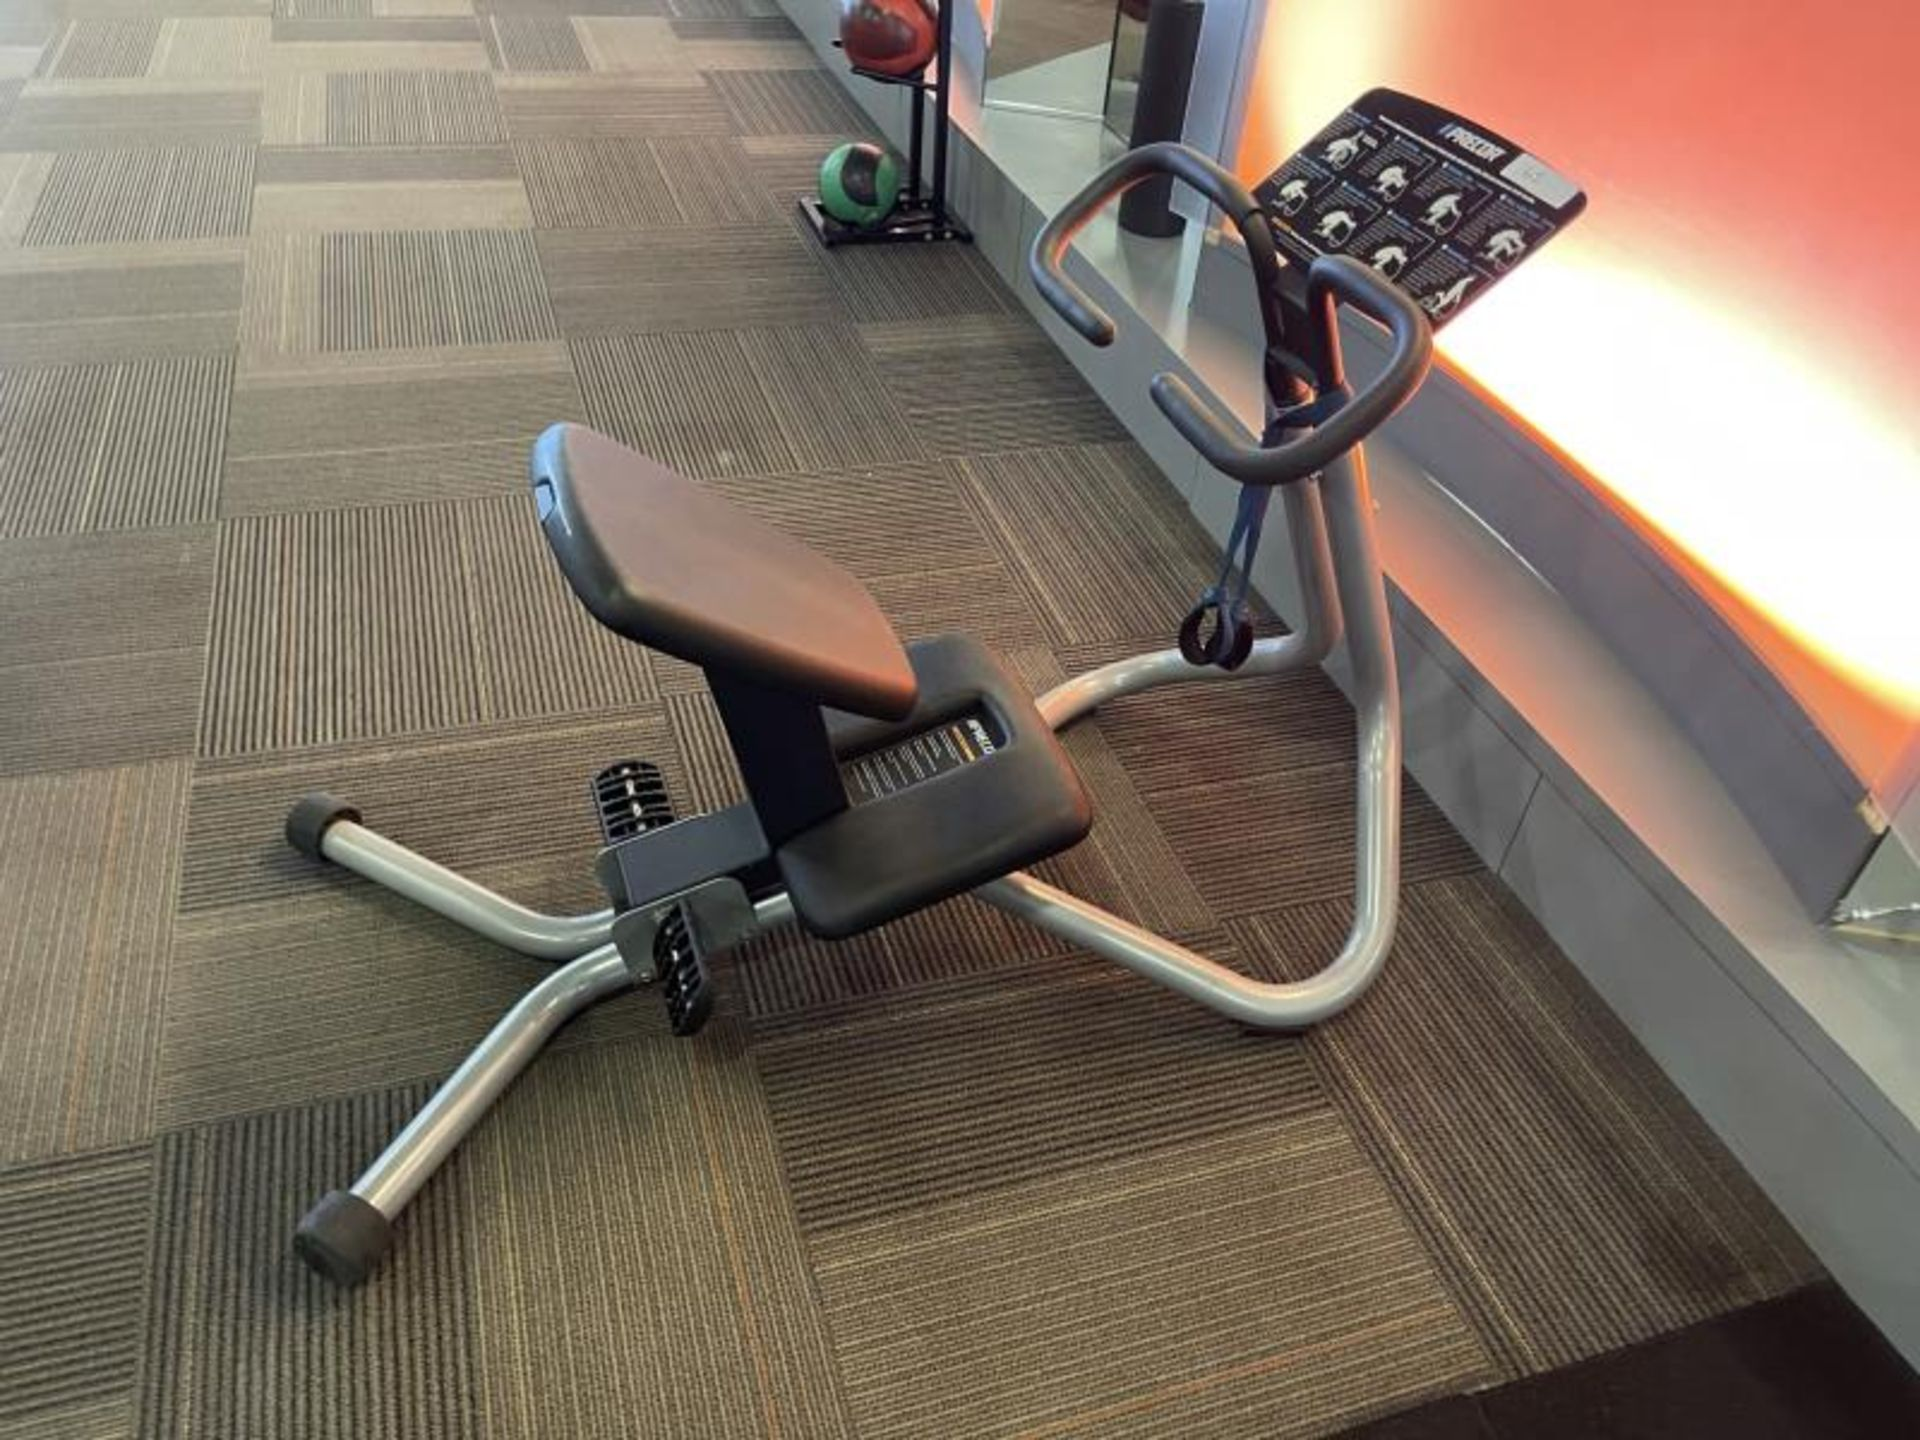 Precor Commerical Stretch Trainer - Image 3 of 3